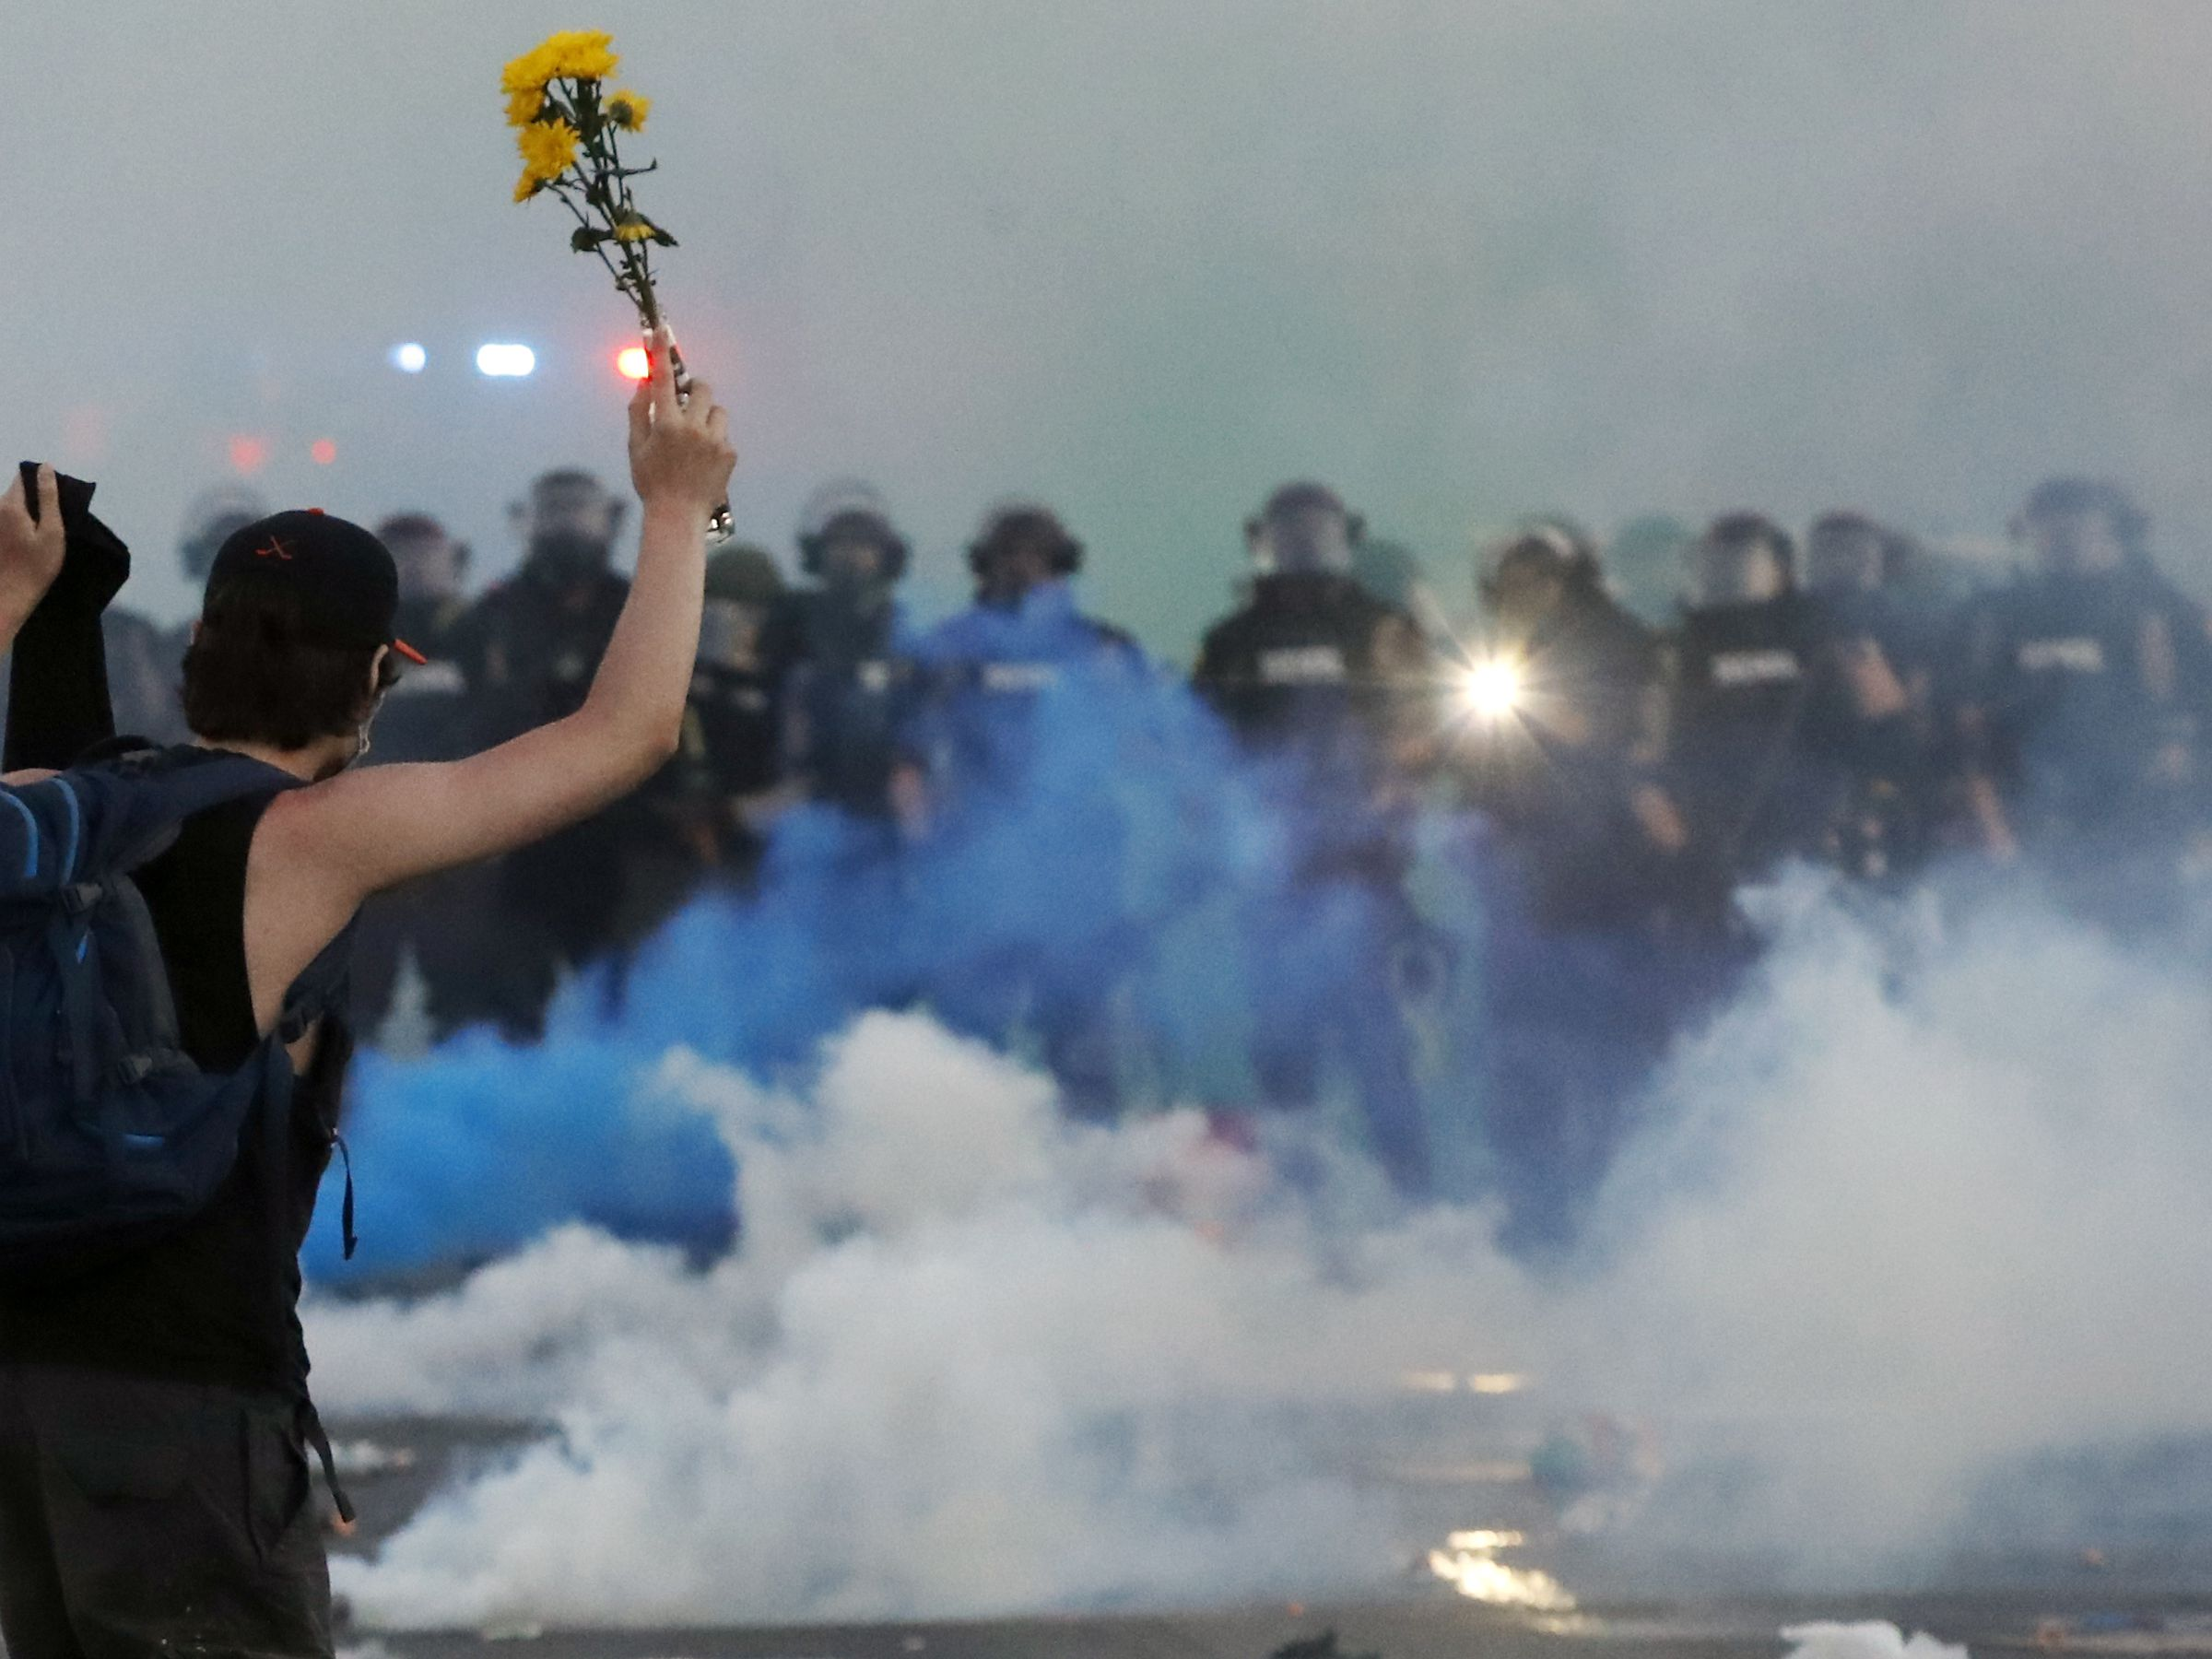 GRAPHIC: Unrest overshadows peaceful US protests for another night